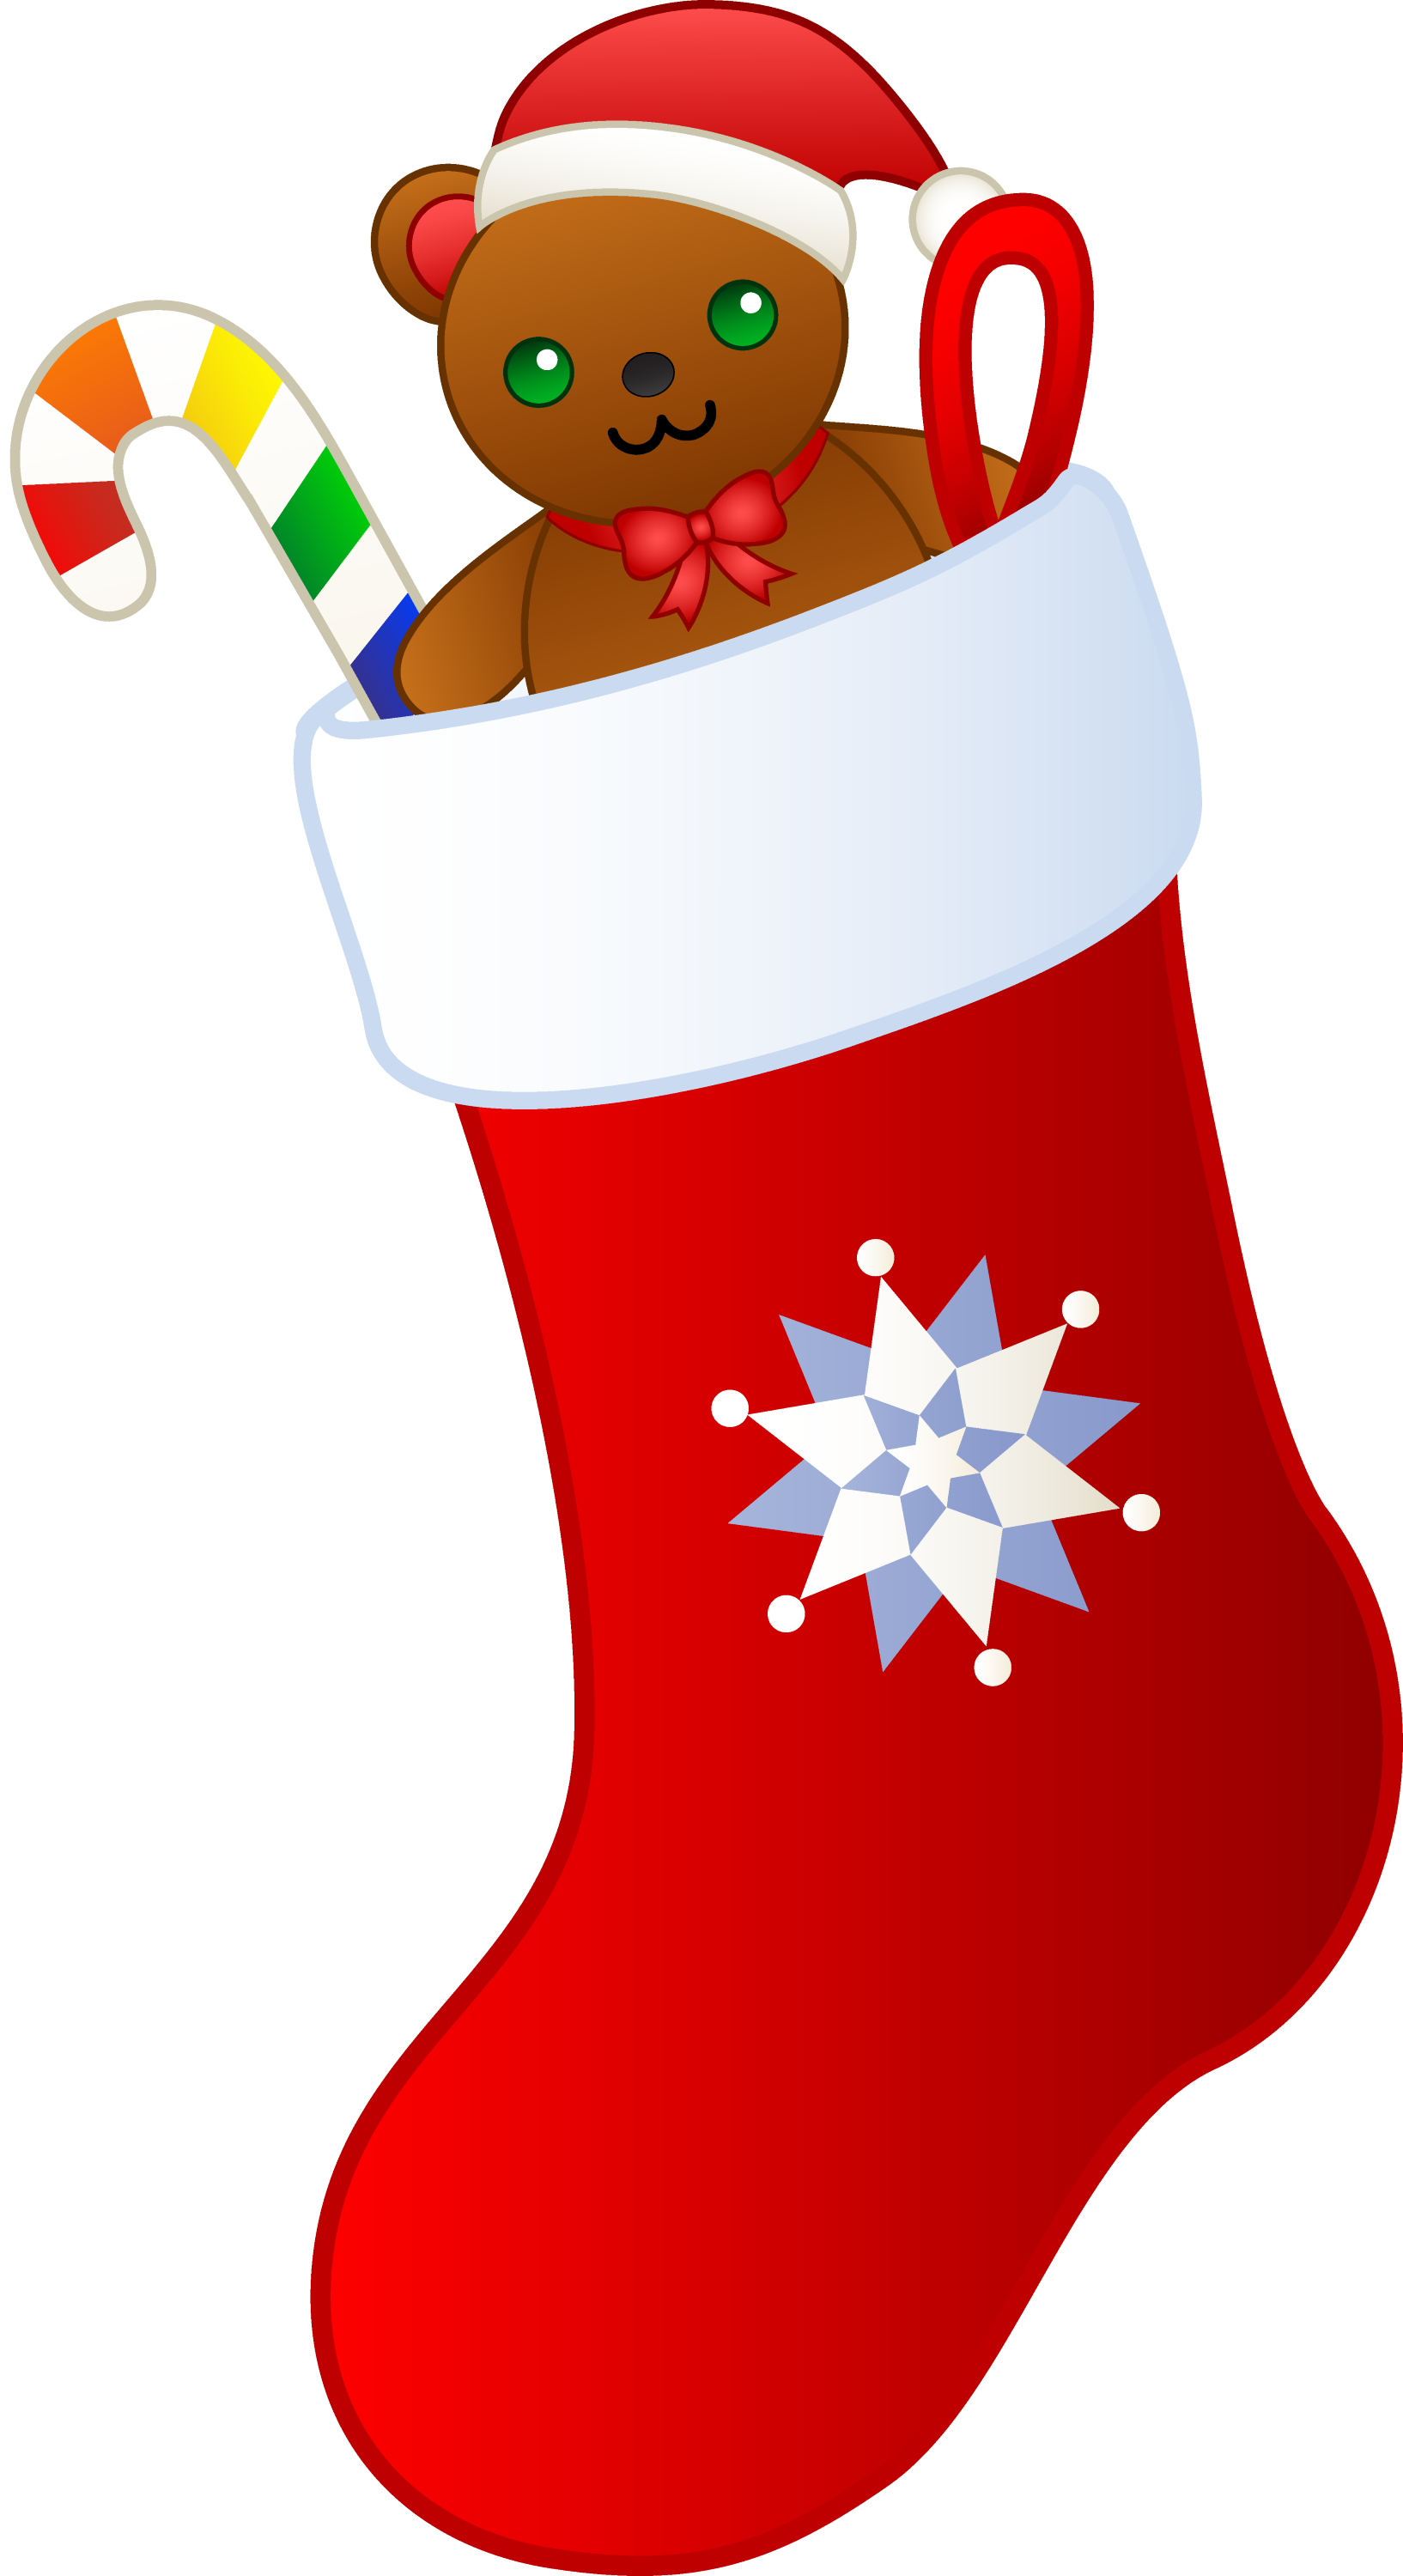 Christmas Stocking Filled With Gifts - Free Clip Art